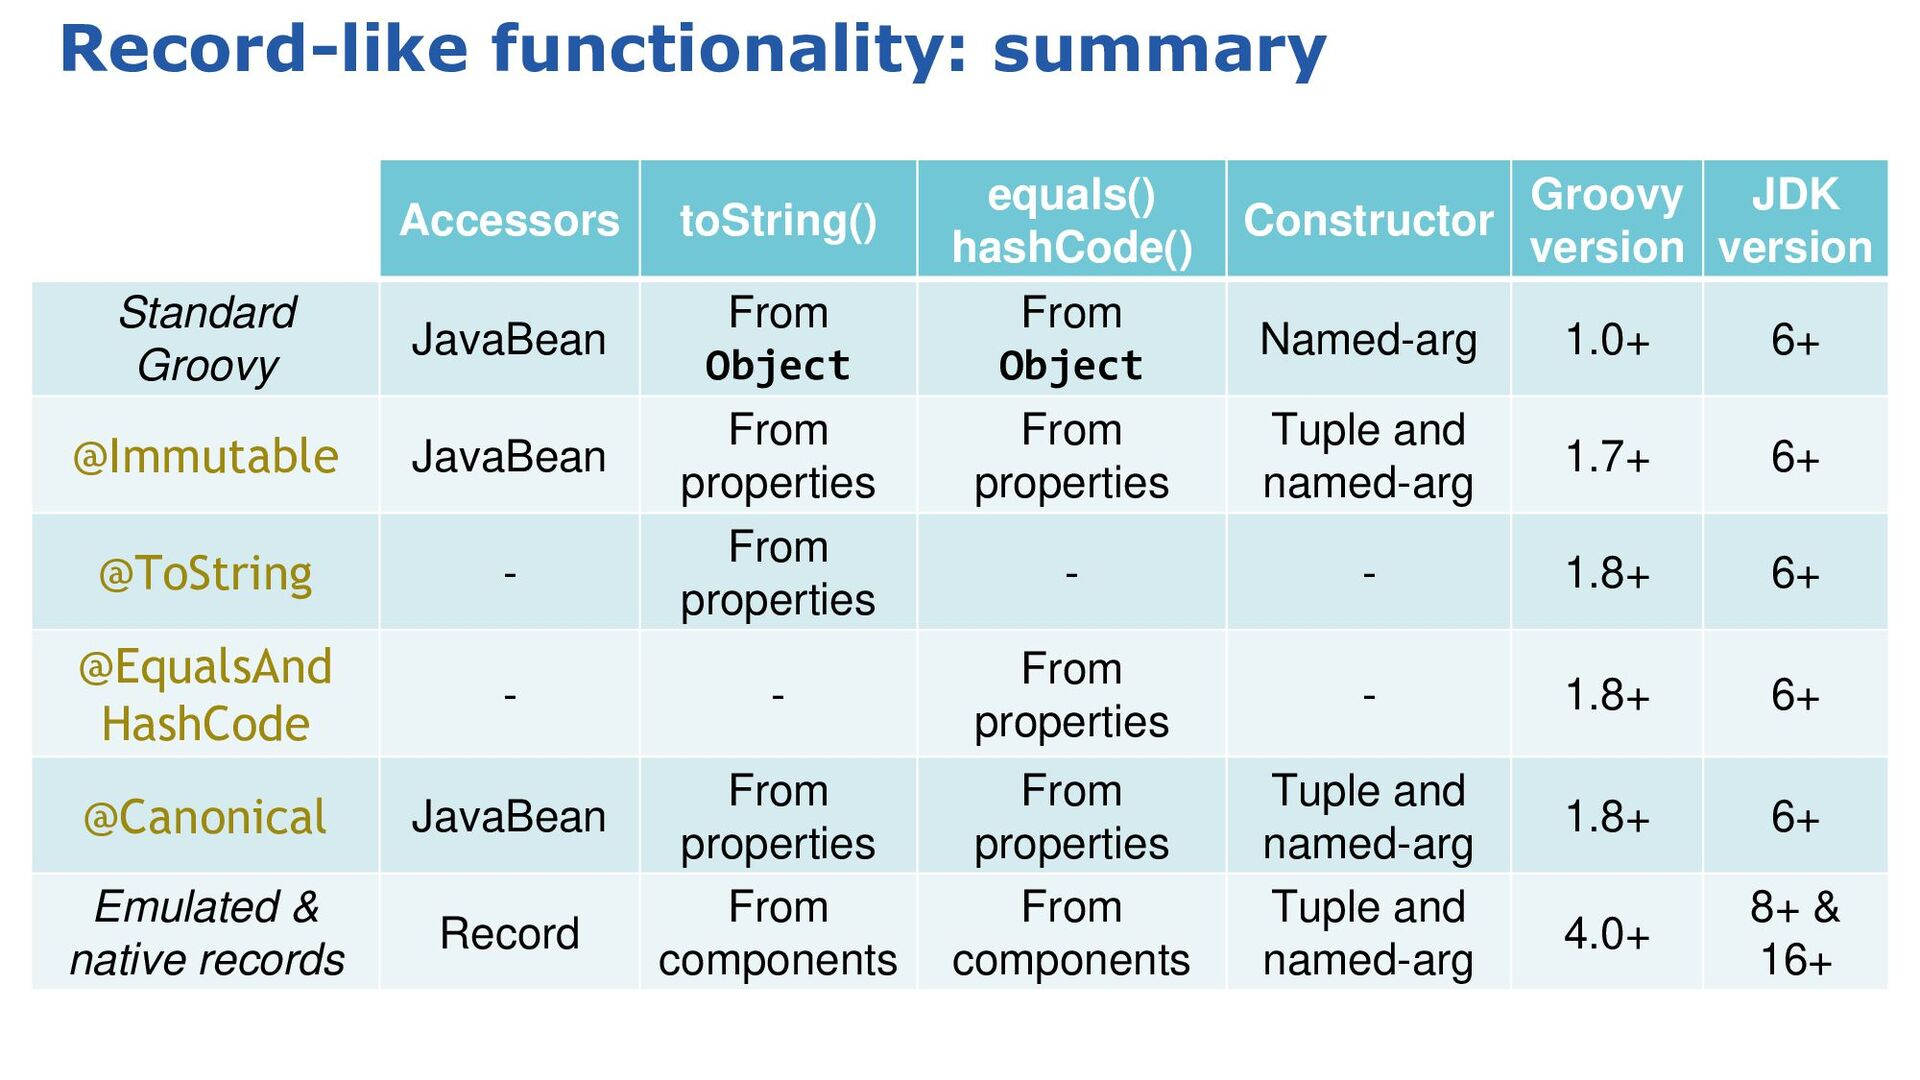 JPMS: remove illegal access warnings